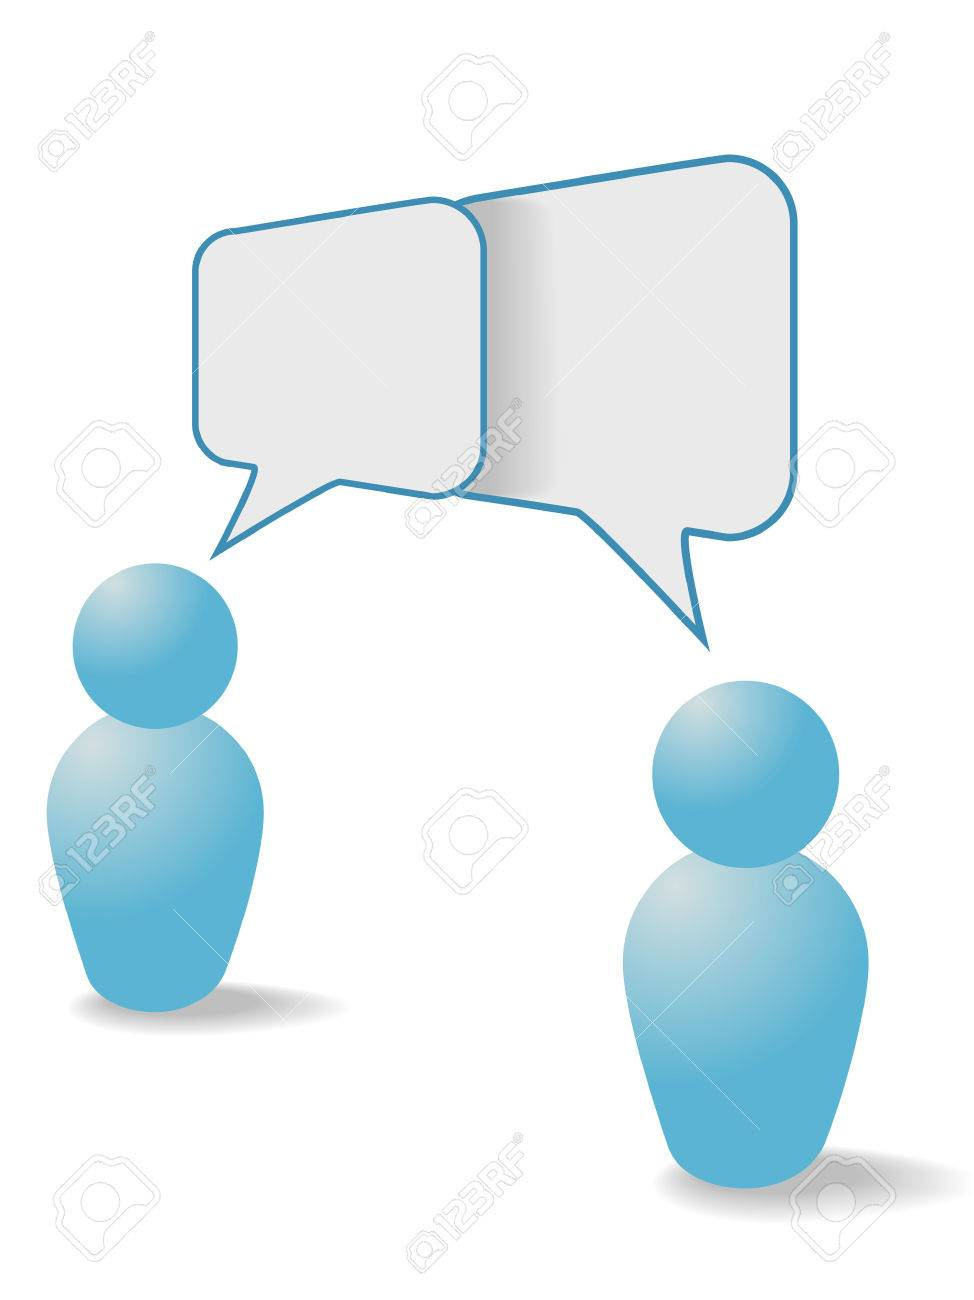 Two people symbols share talk together in overlapping social media communication speech bubbles. - 7529769